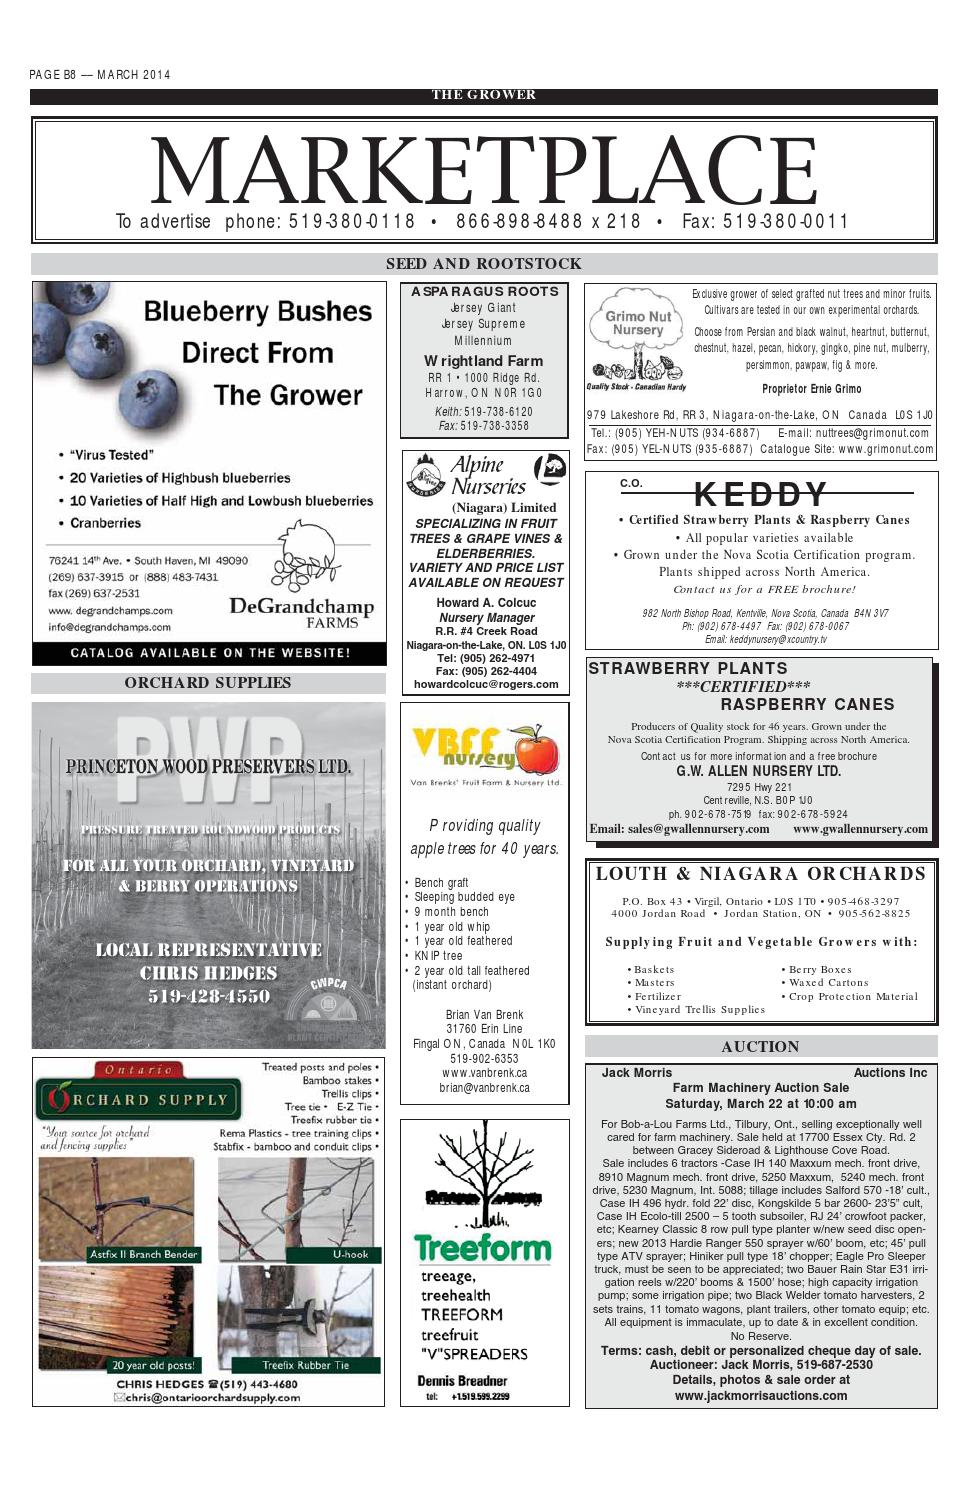 The Grower March 2014 by The Grower - issuu